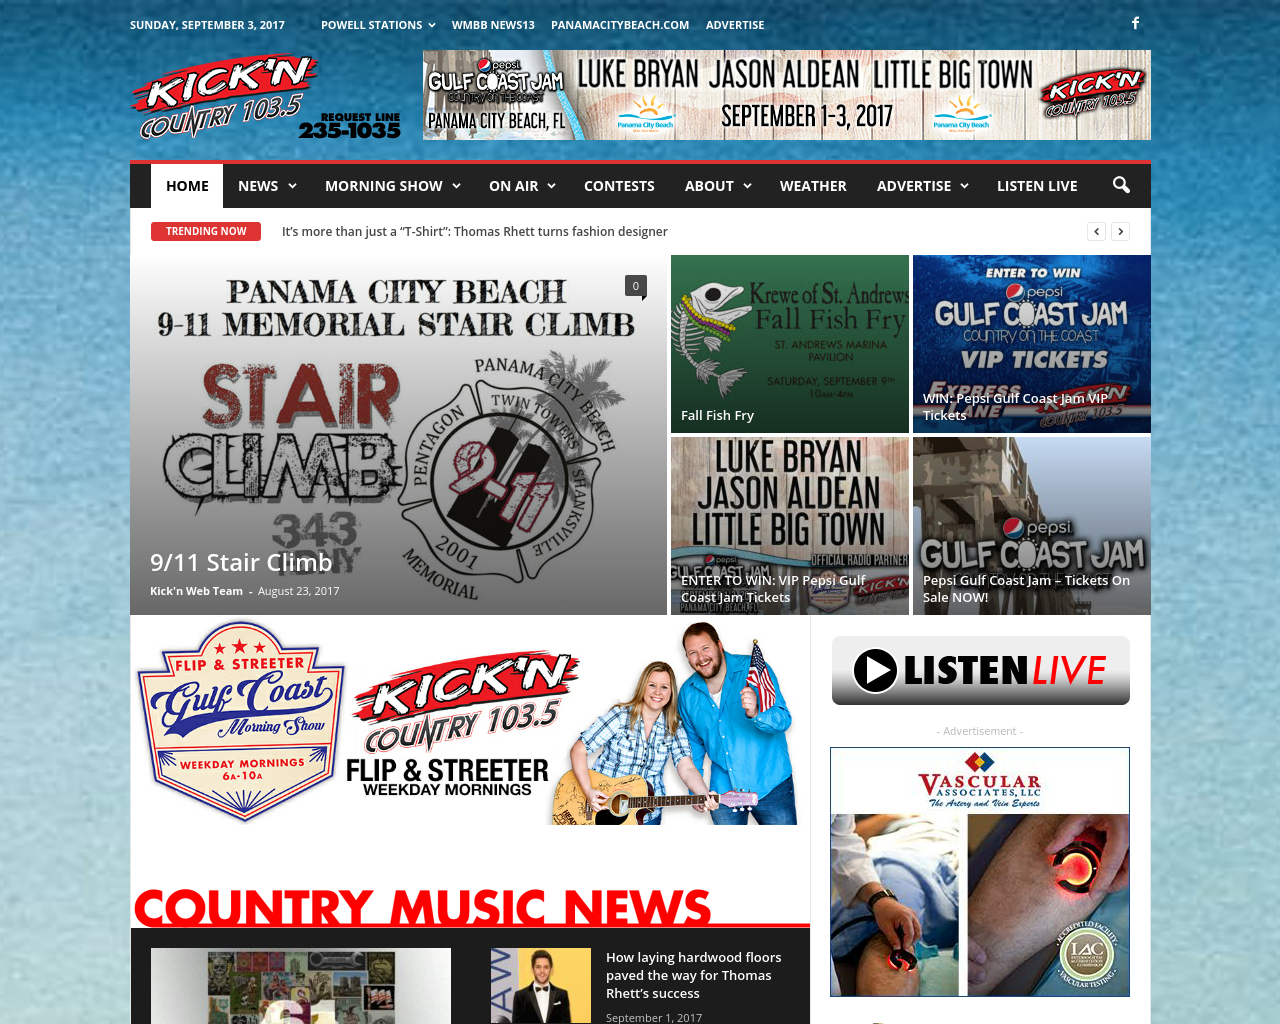 Kick'n-Country-103.5-Advertising-Reviews-Pricing